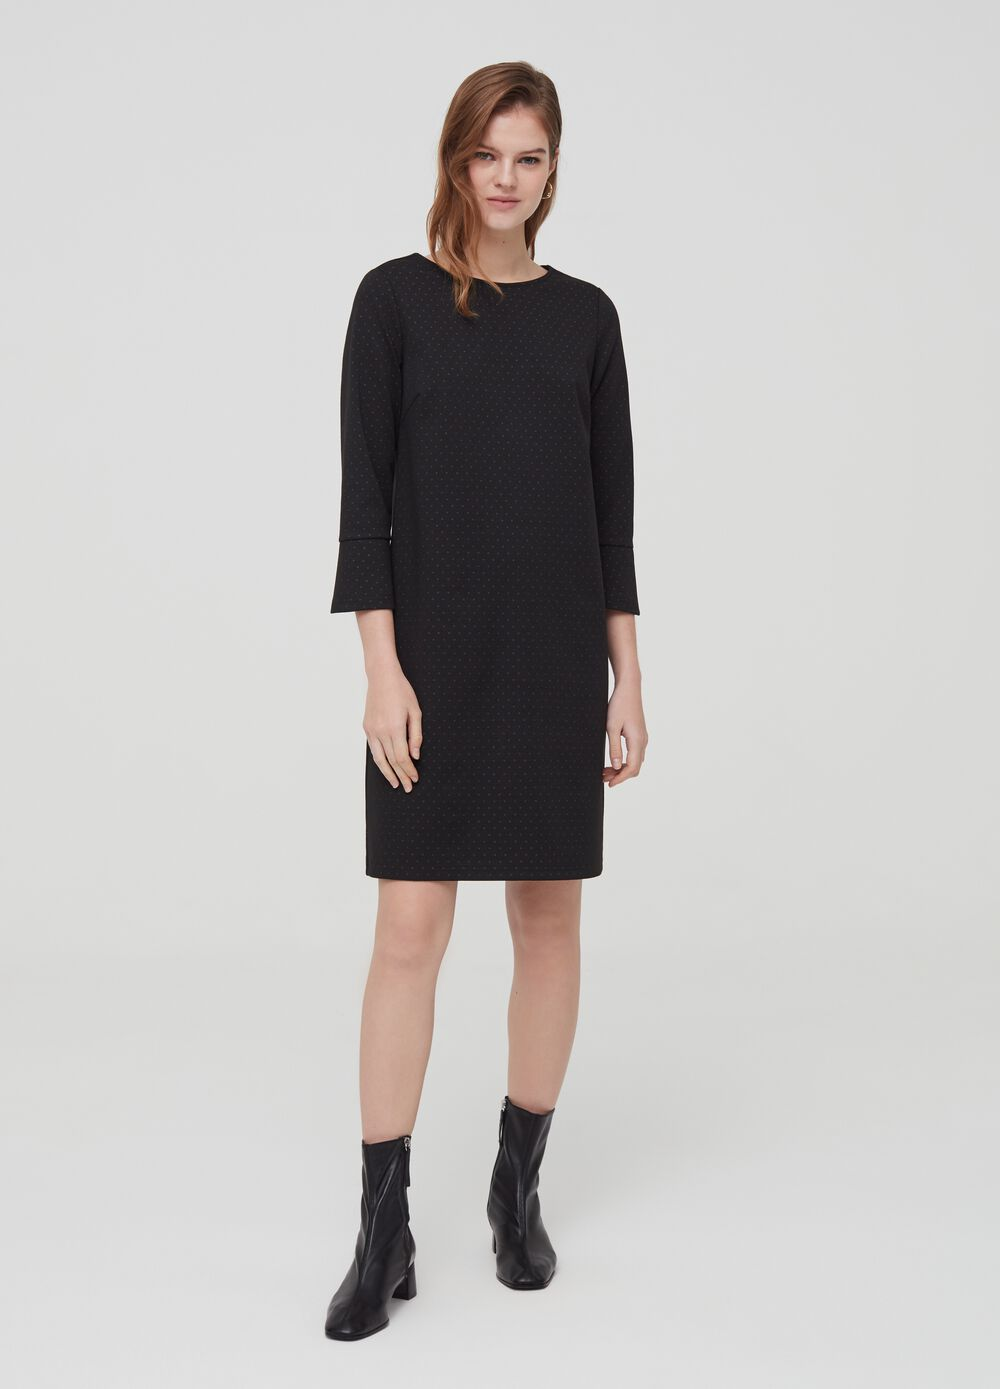 Dress with three-quarter sleeves and check pattern